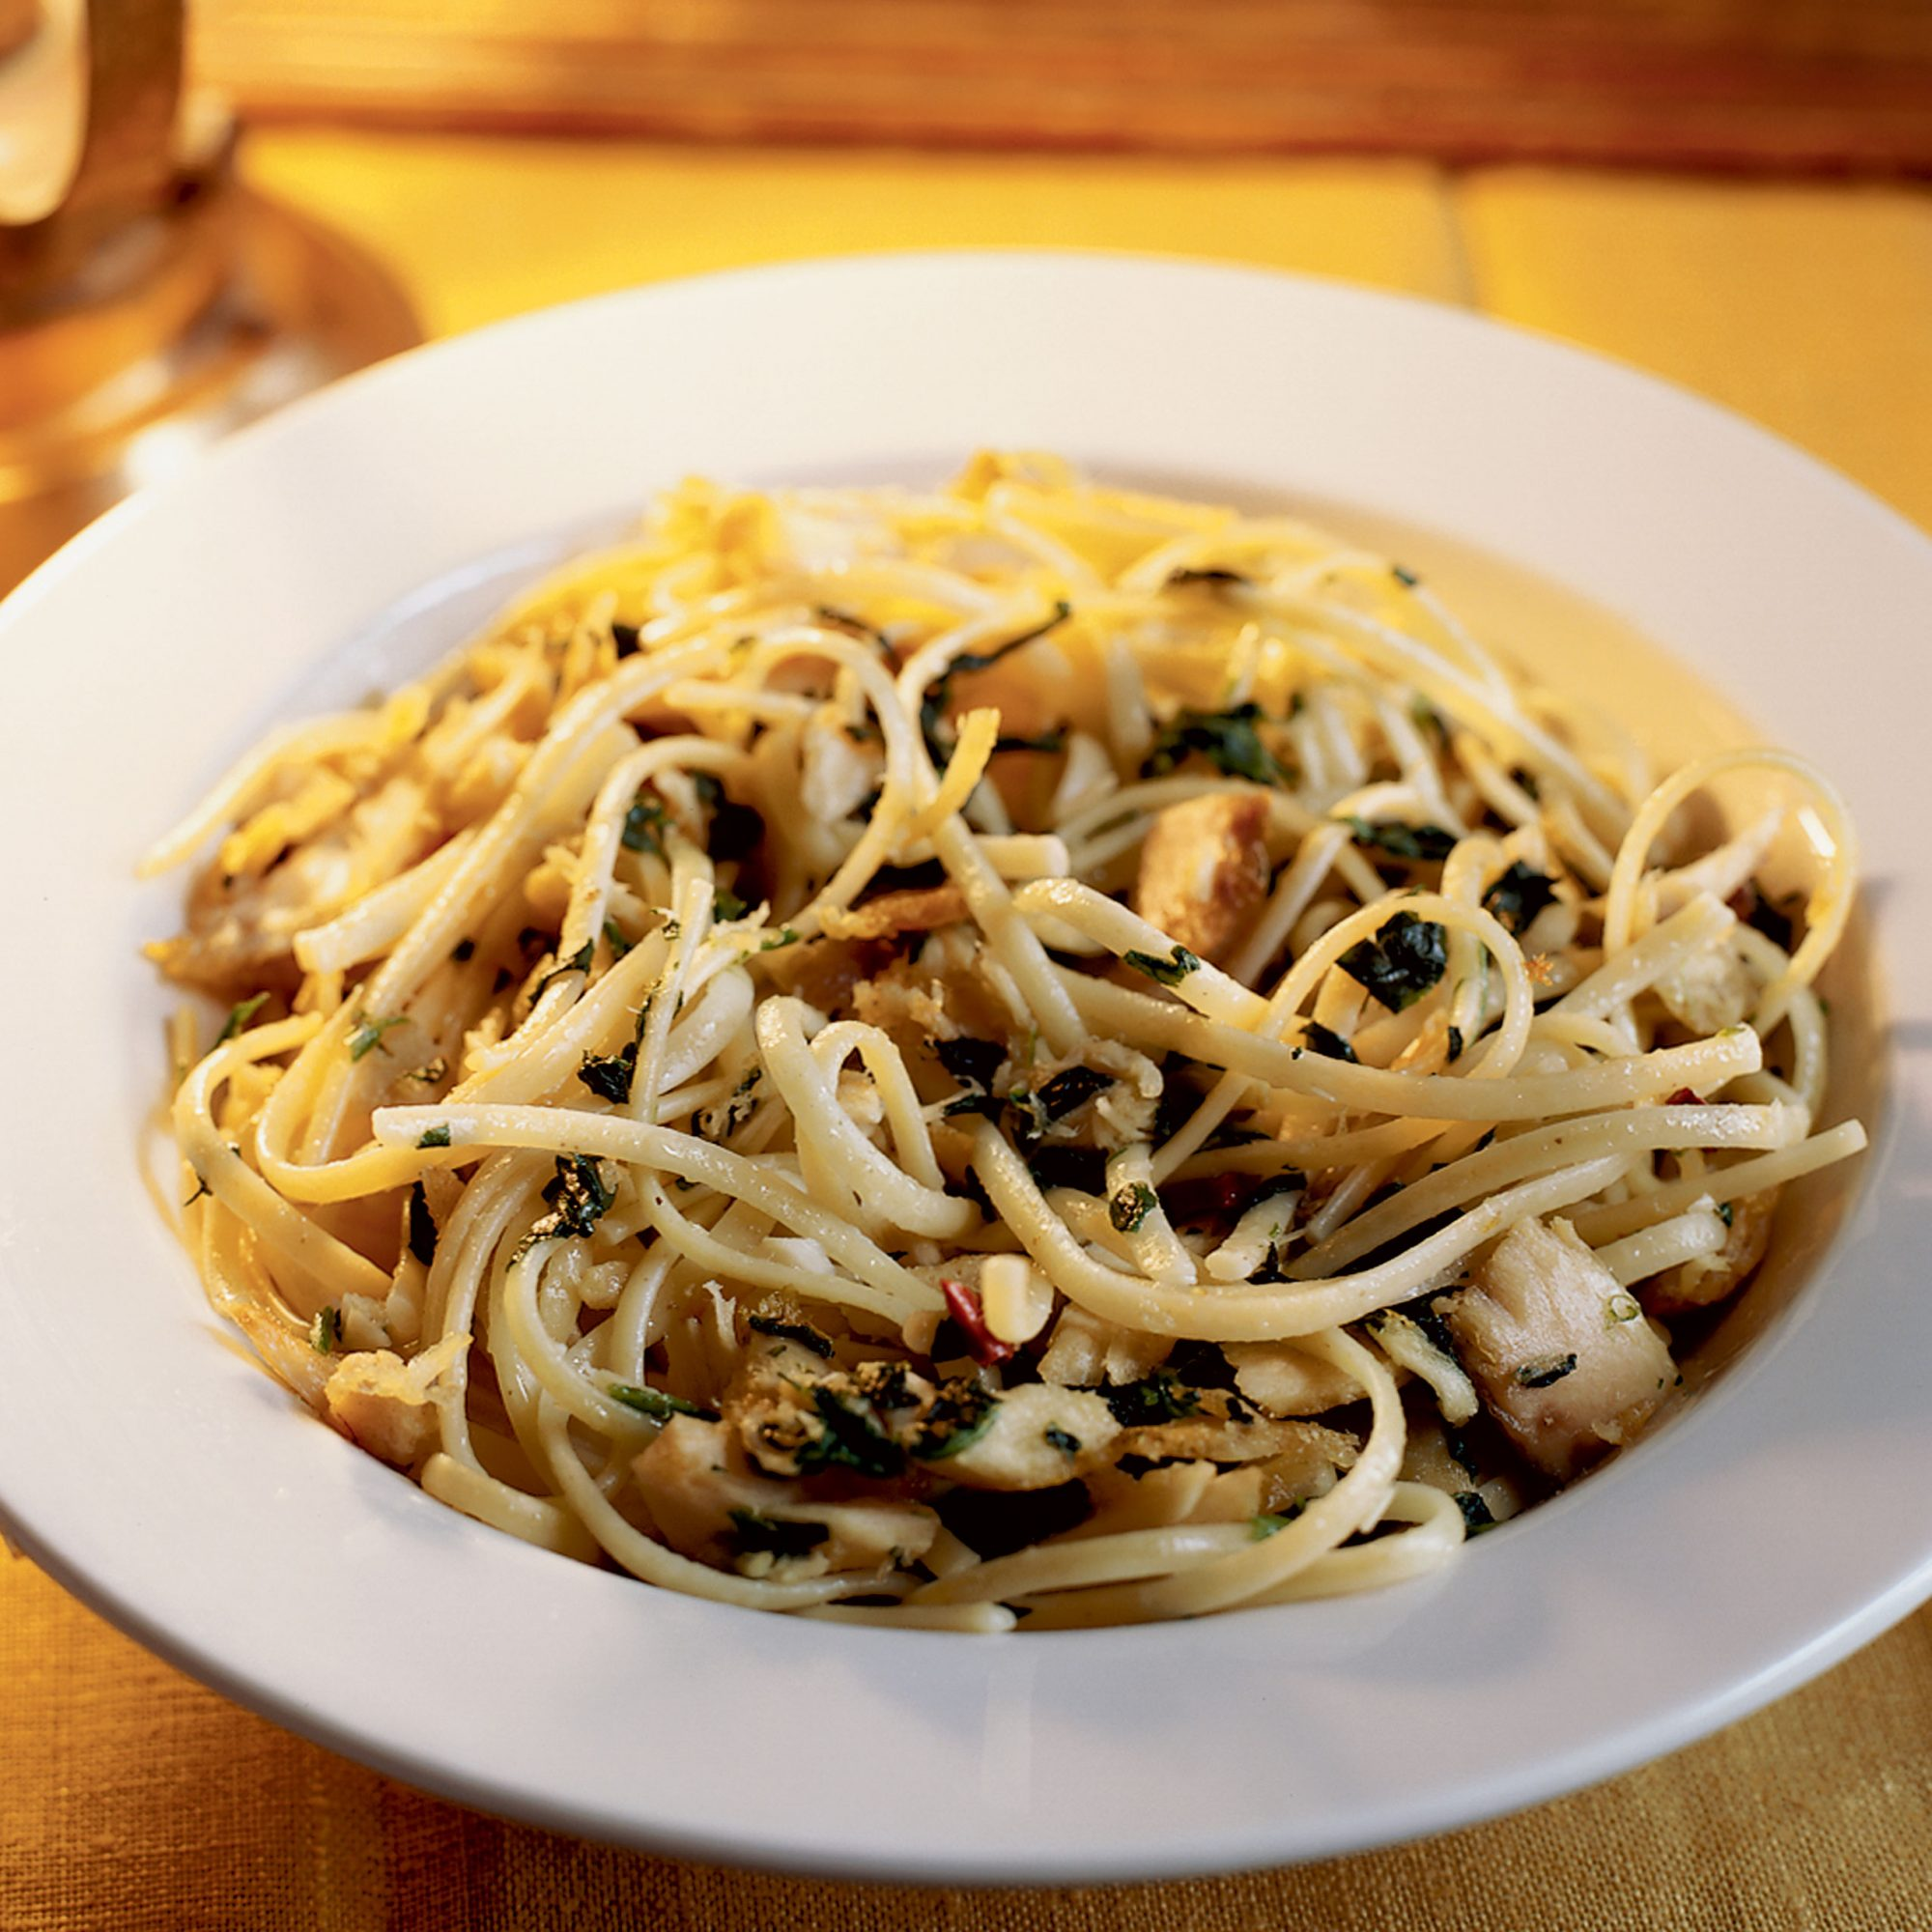 Midnight pasta with tuna pancetta and spinach recipe steven wagner food wine for Tuna fish pasta